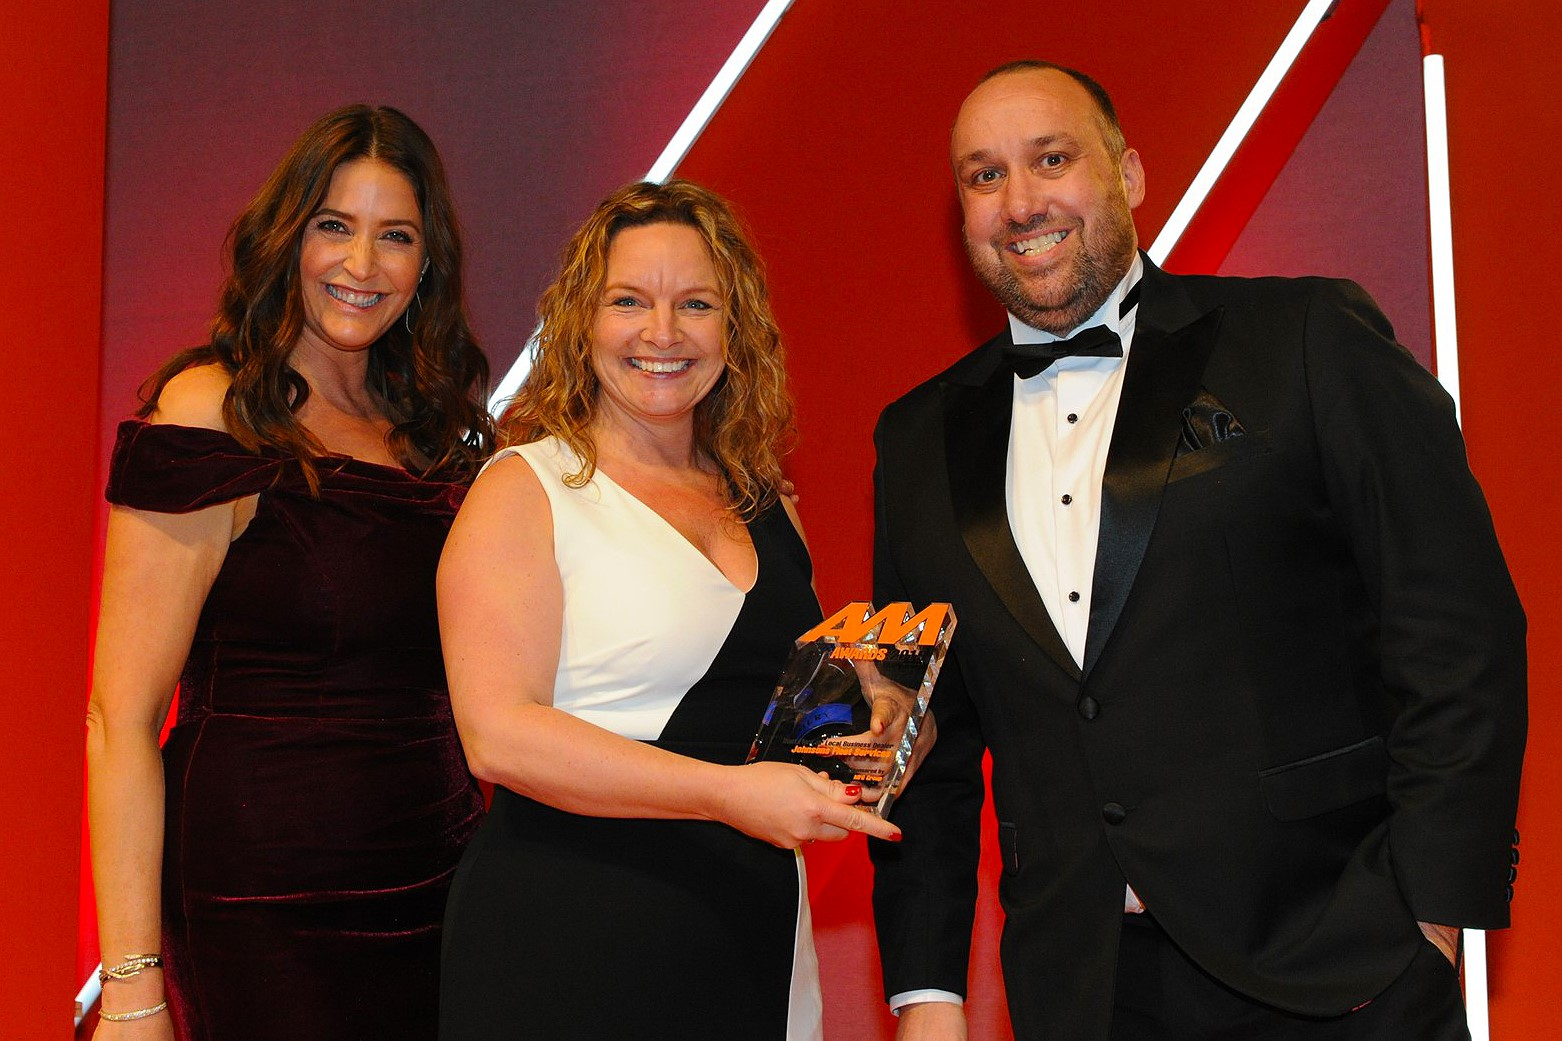 Louise Baker, head of fleet operations, Johnsons  Fleet Services, accepts the award from  Declan Gaule, chief executive, MFG Group, right, and host Lisa Snowdon, left